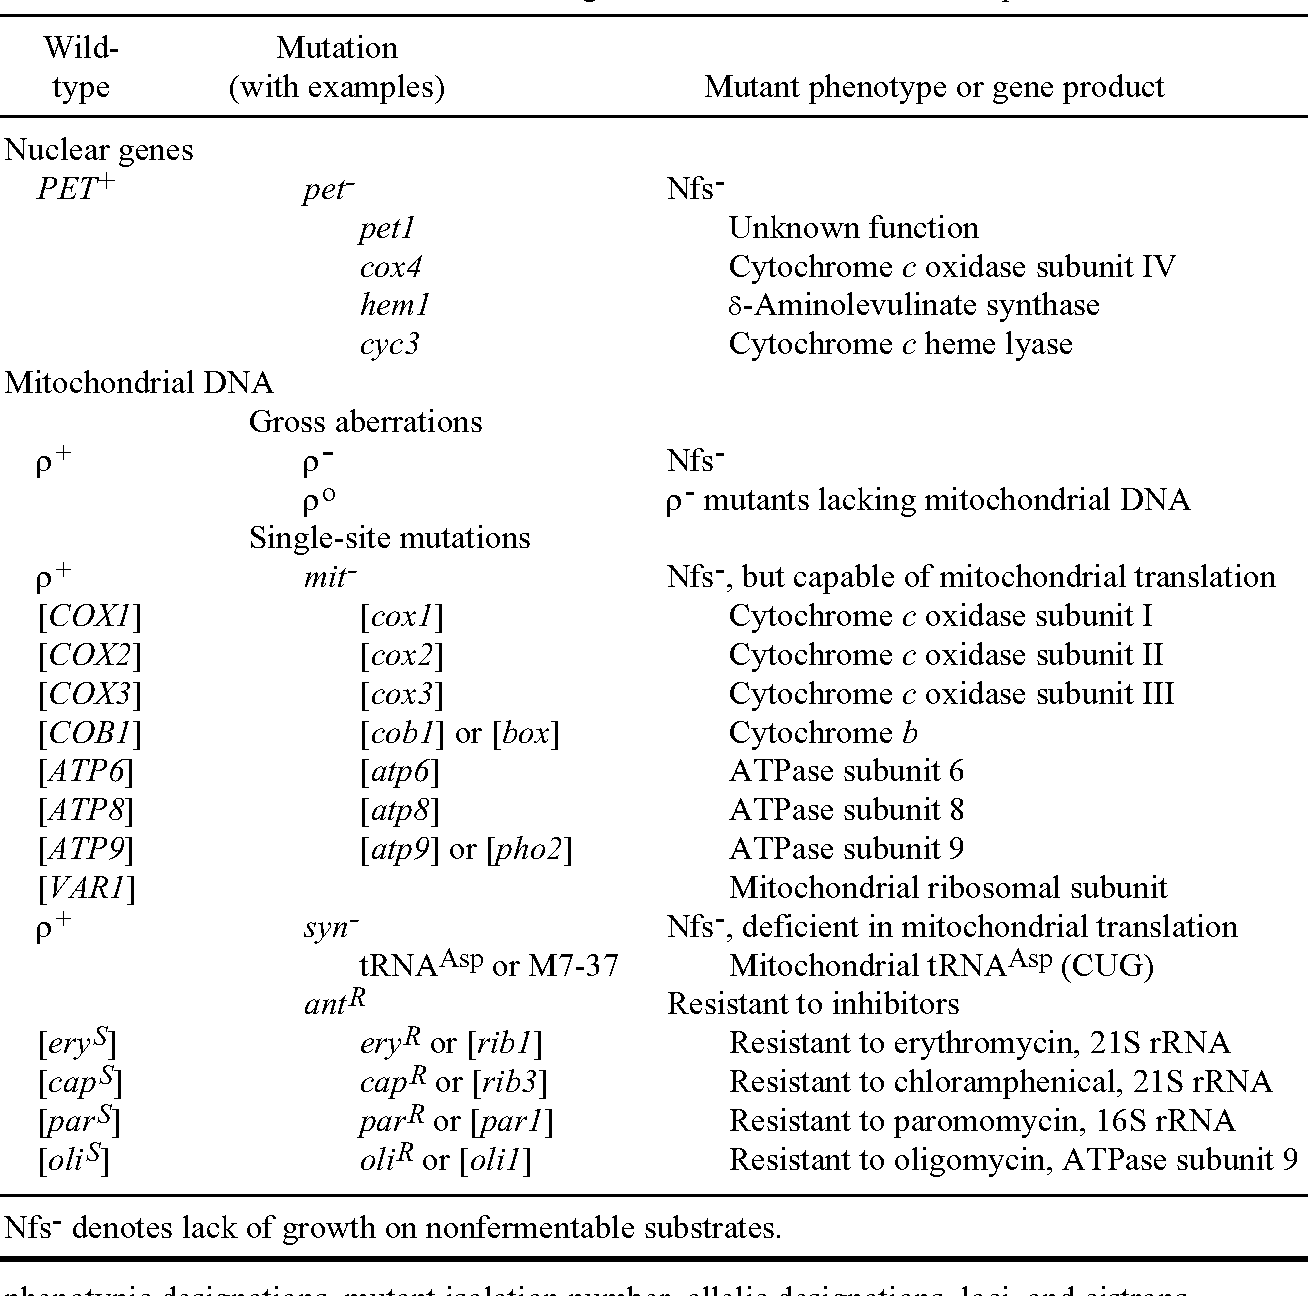 Table 3 from An Introduction to the Genetics and Molecular